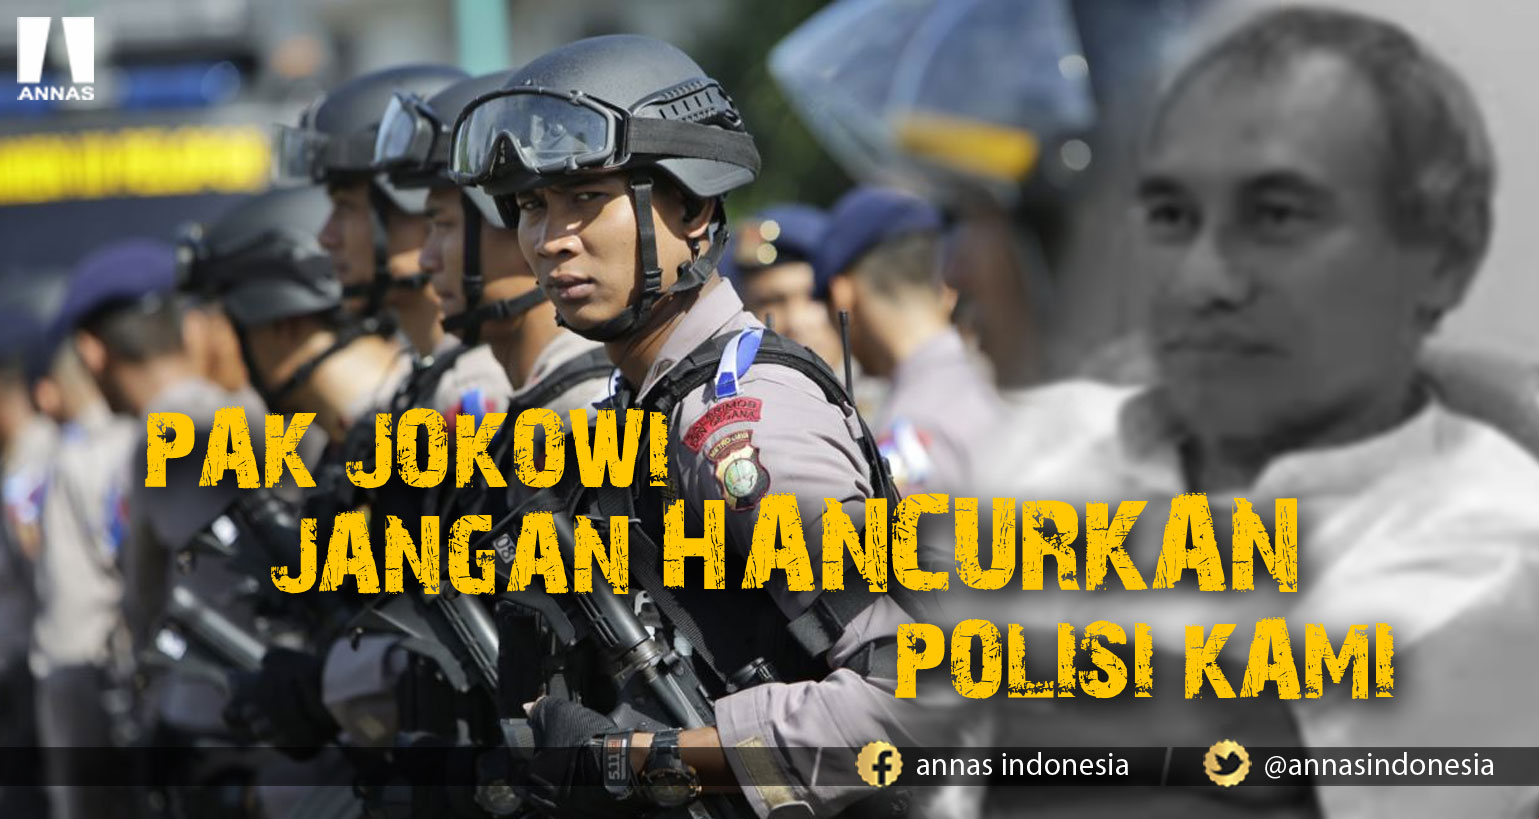 PAK JOKOWI JANGAN HANCURKAN POLISI KAMI